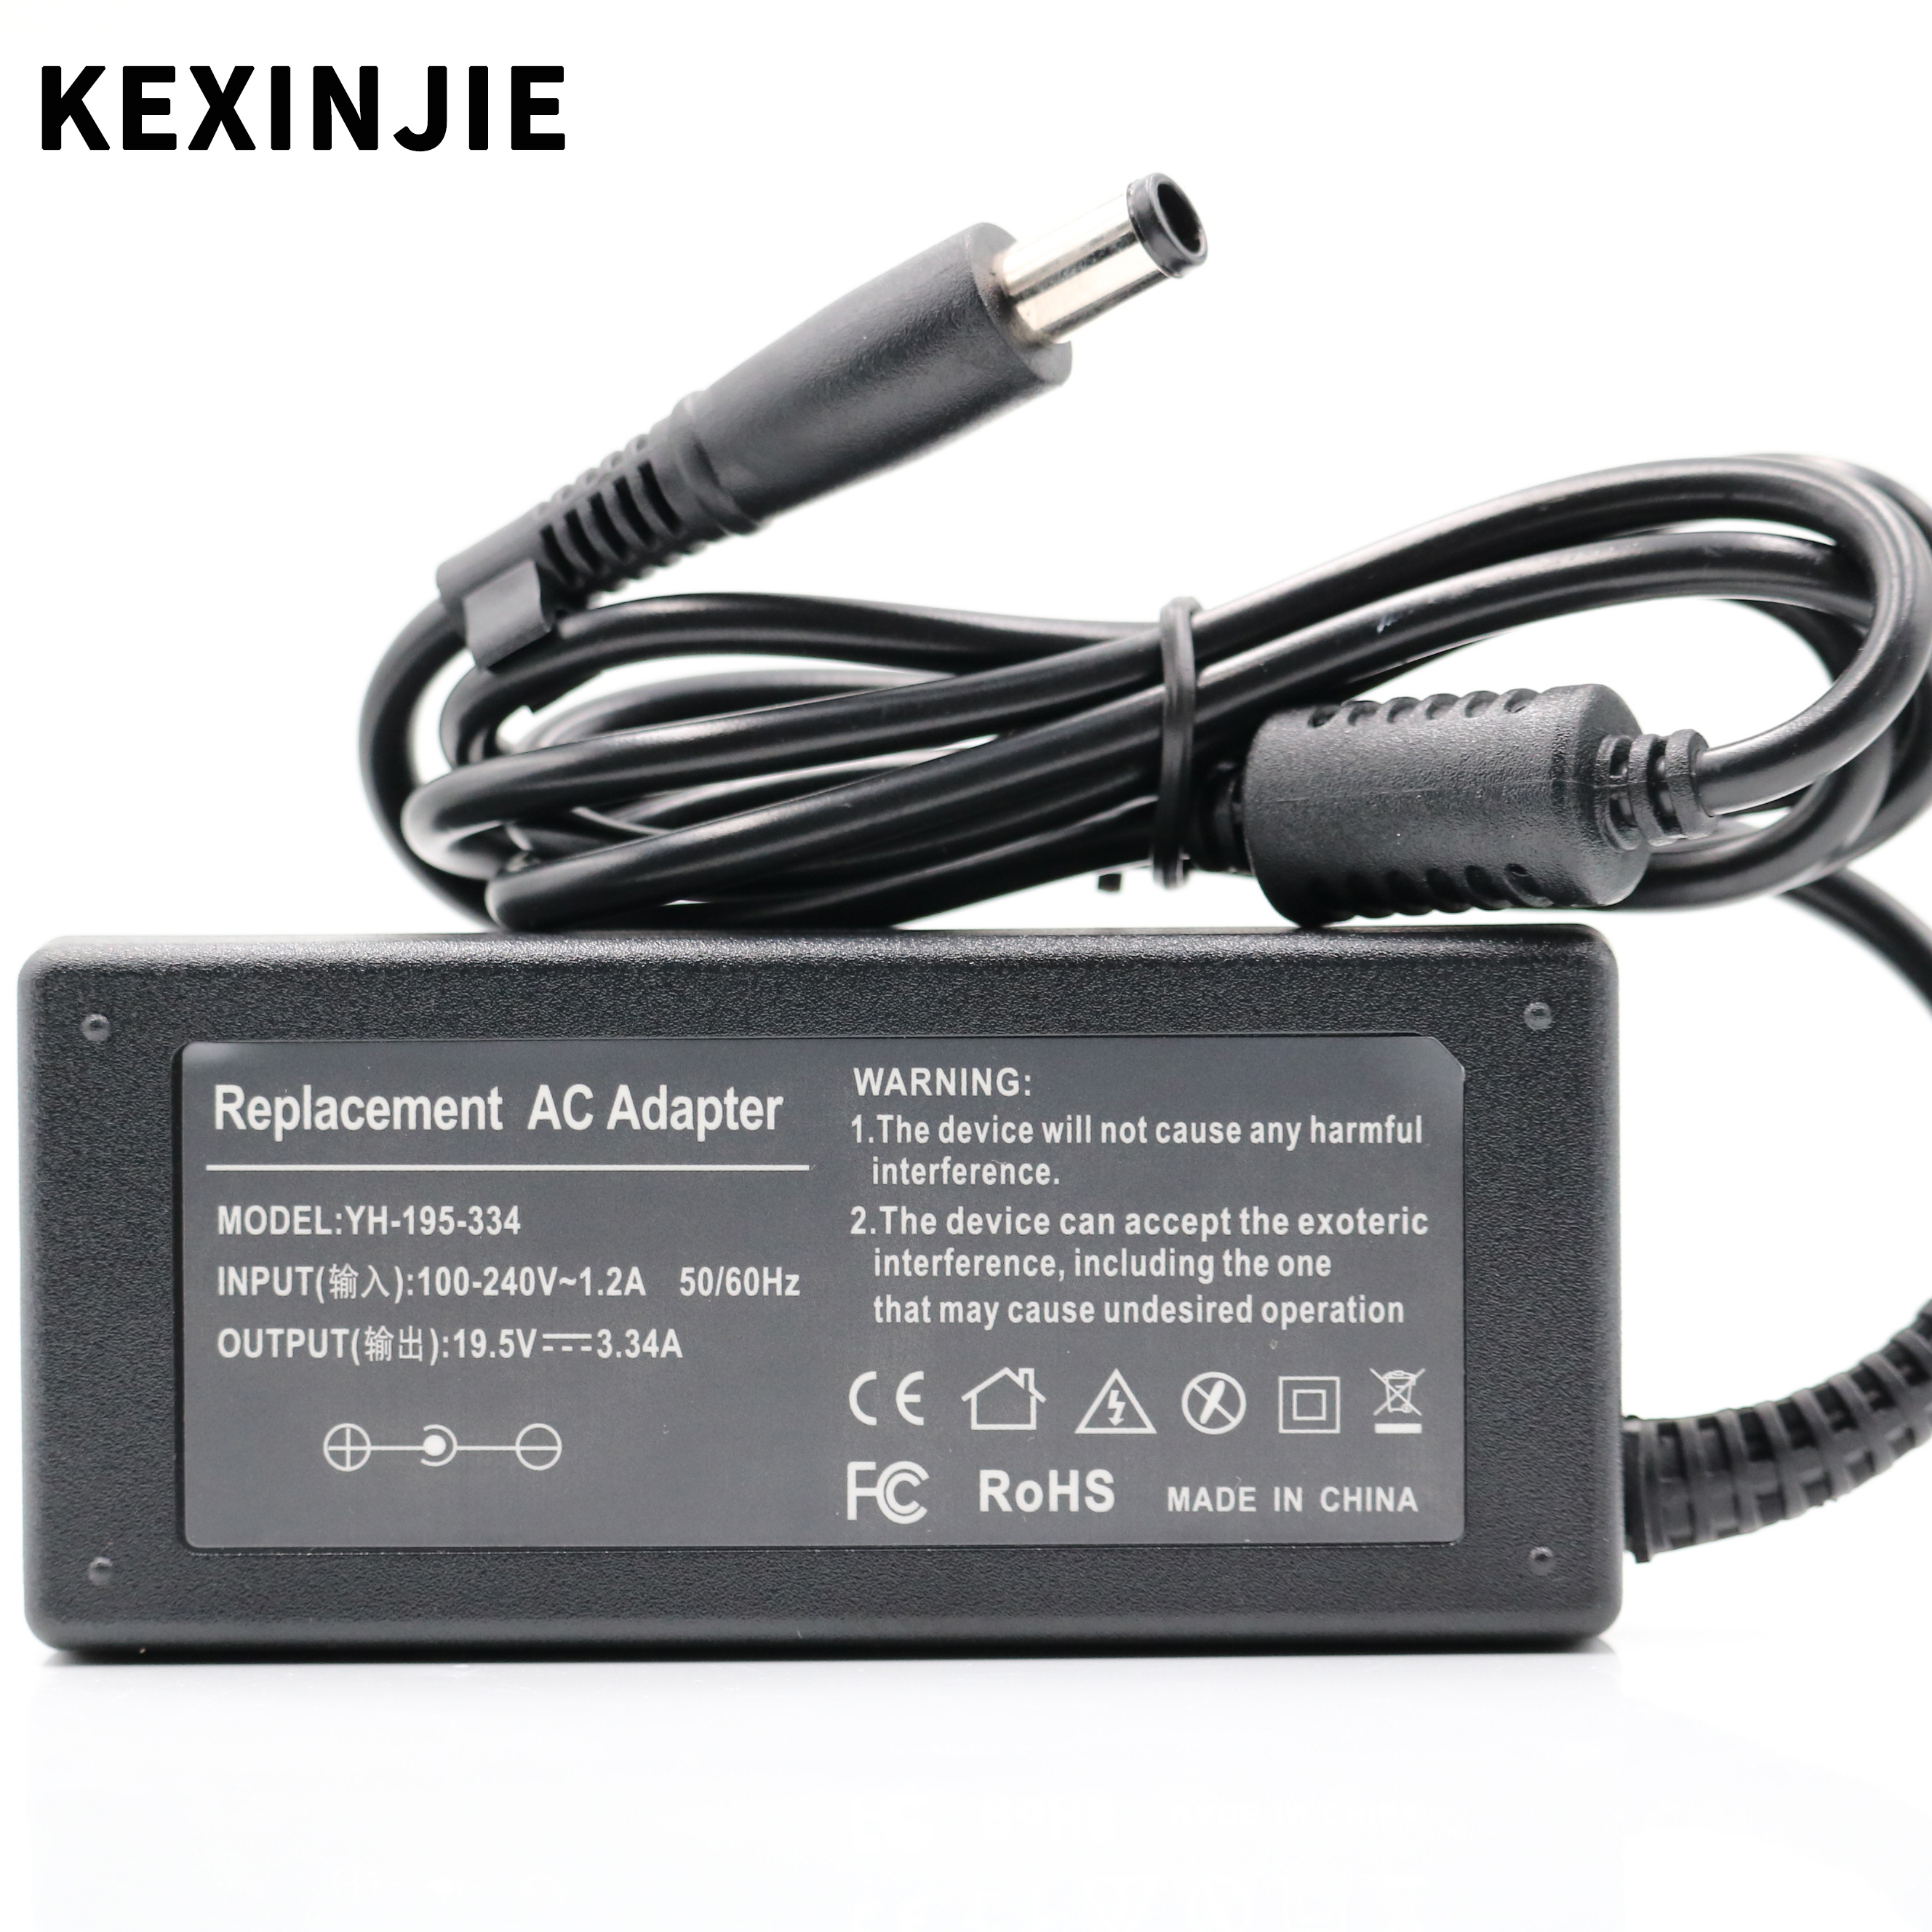 65W 19.5V 3.34A Adaptor Charger For Dell HA65NS5-00 09RN2C DA65NM111-00 LA65NS2-01 PA-12 Inspiron 17 1750 1764 1720